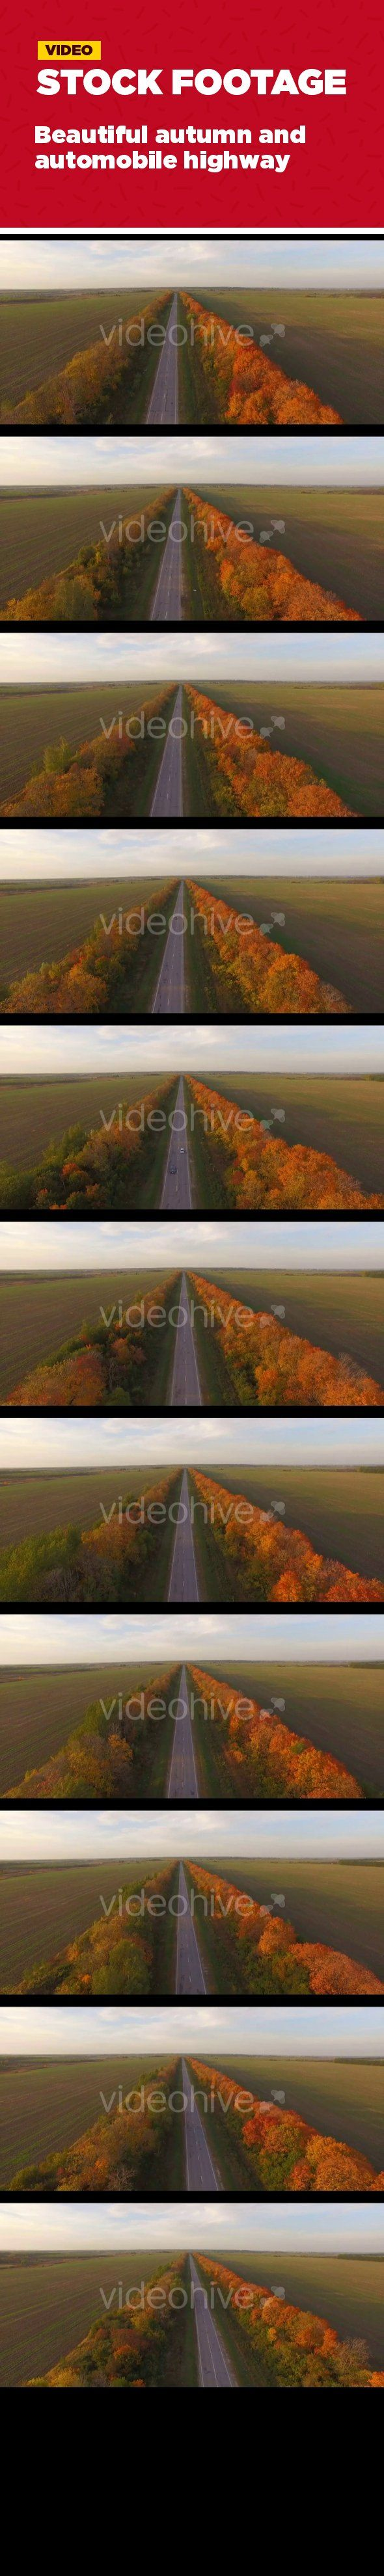 asphalt, auto, automobile, autumn, background, beautiful, fall, forest, highway, landscape, nature, road, transport, transportation, travel Beautiful autumn automobile highway, field, forest.   Top view. Aerial. Excellent video for movies and advertisements about the production, technology and business.   1 clips in the pack. Shot with a 4K, 25fps